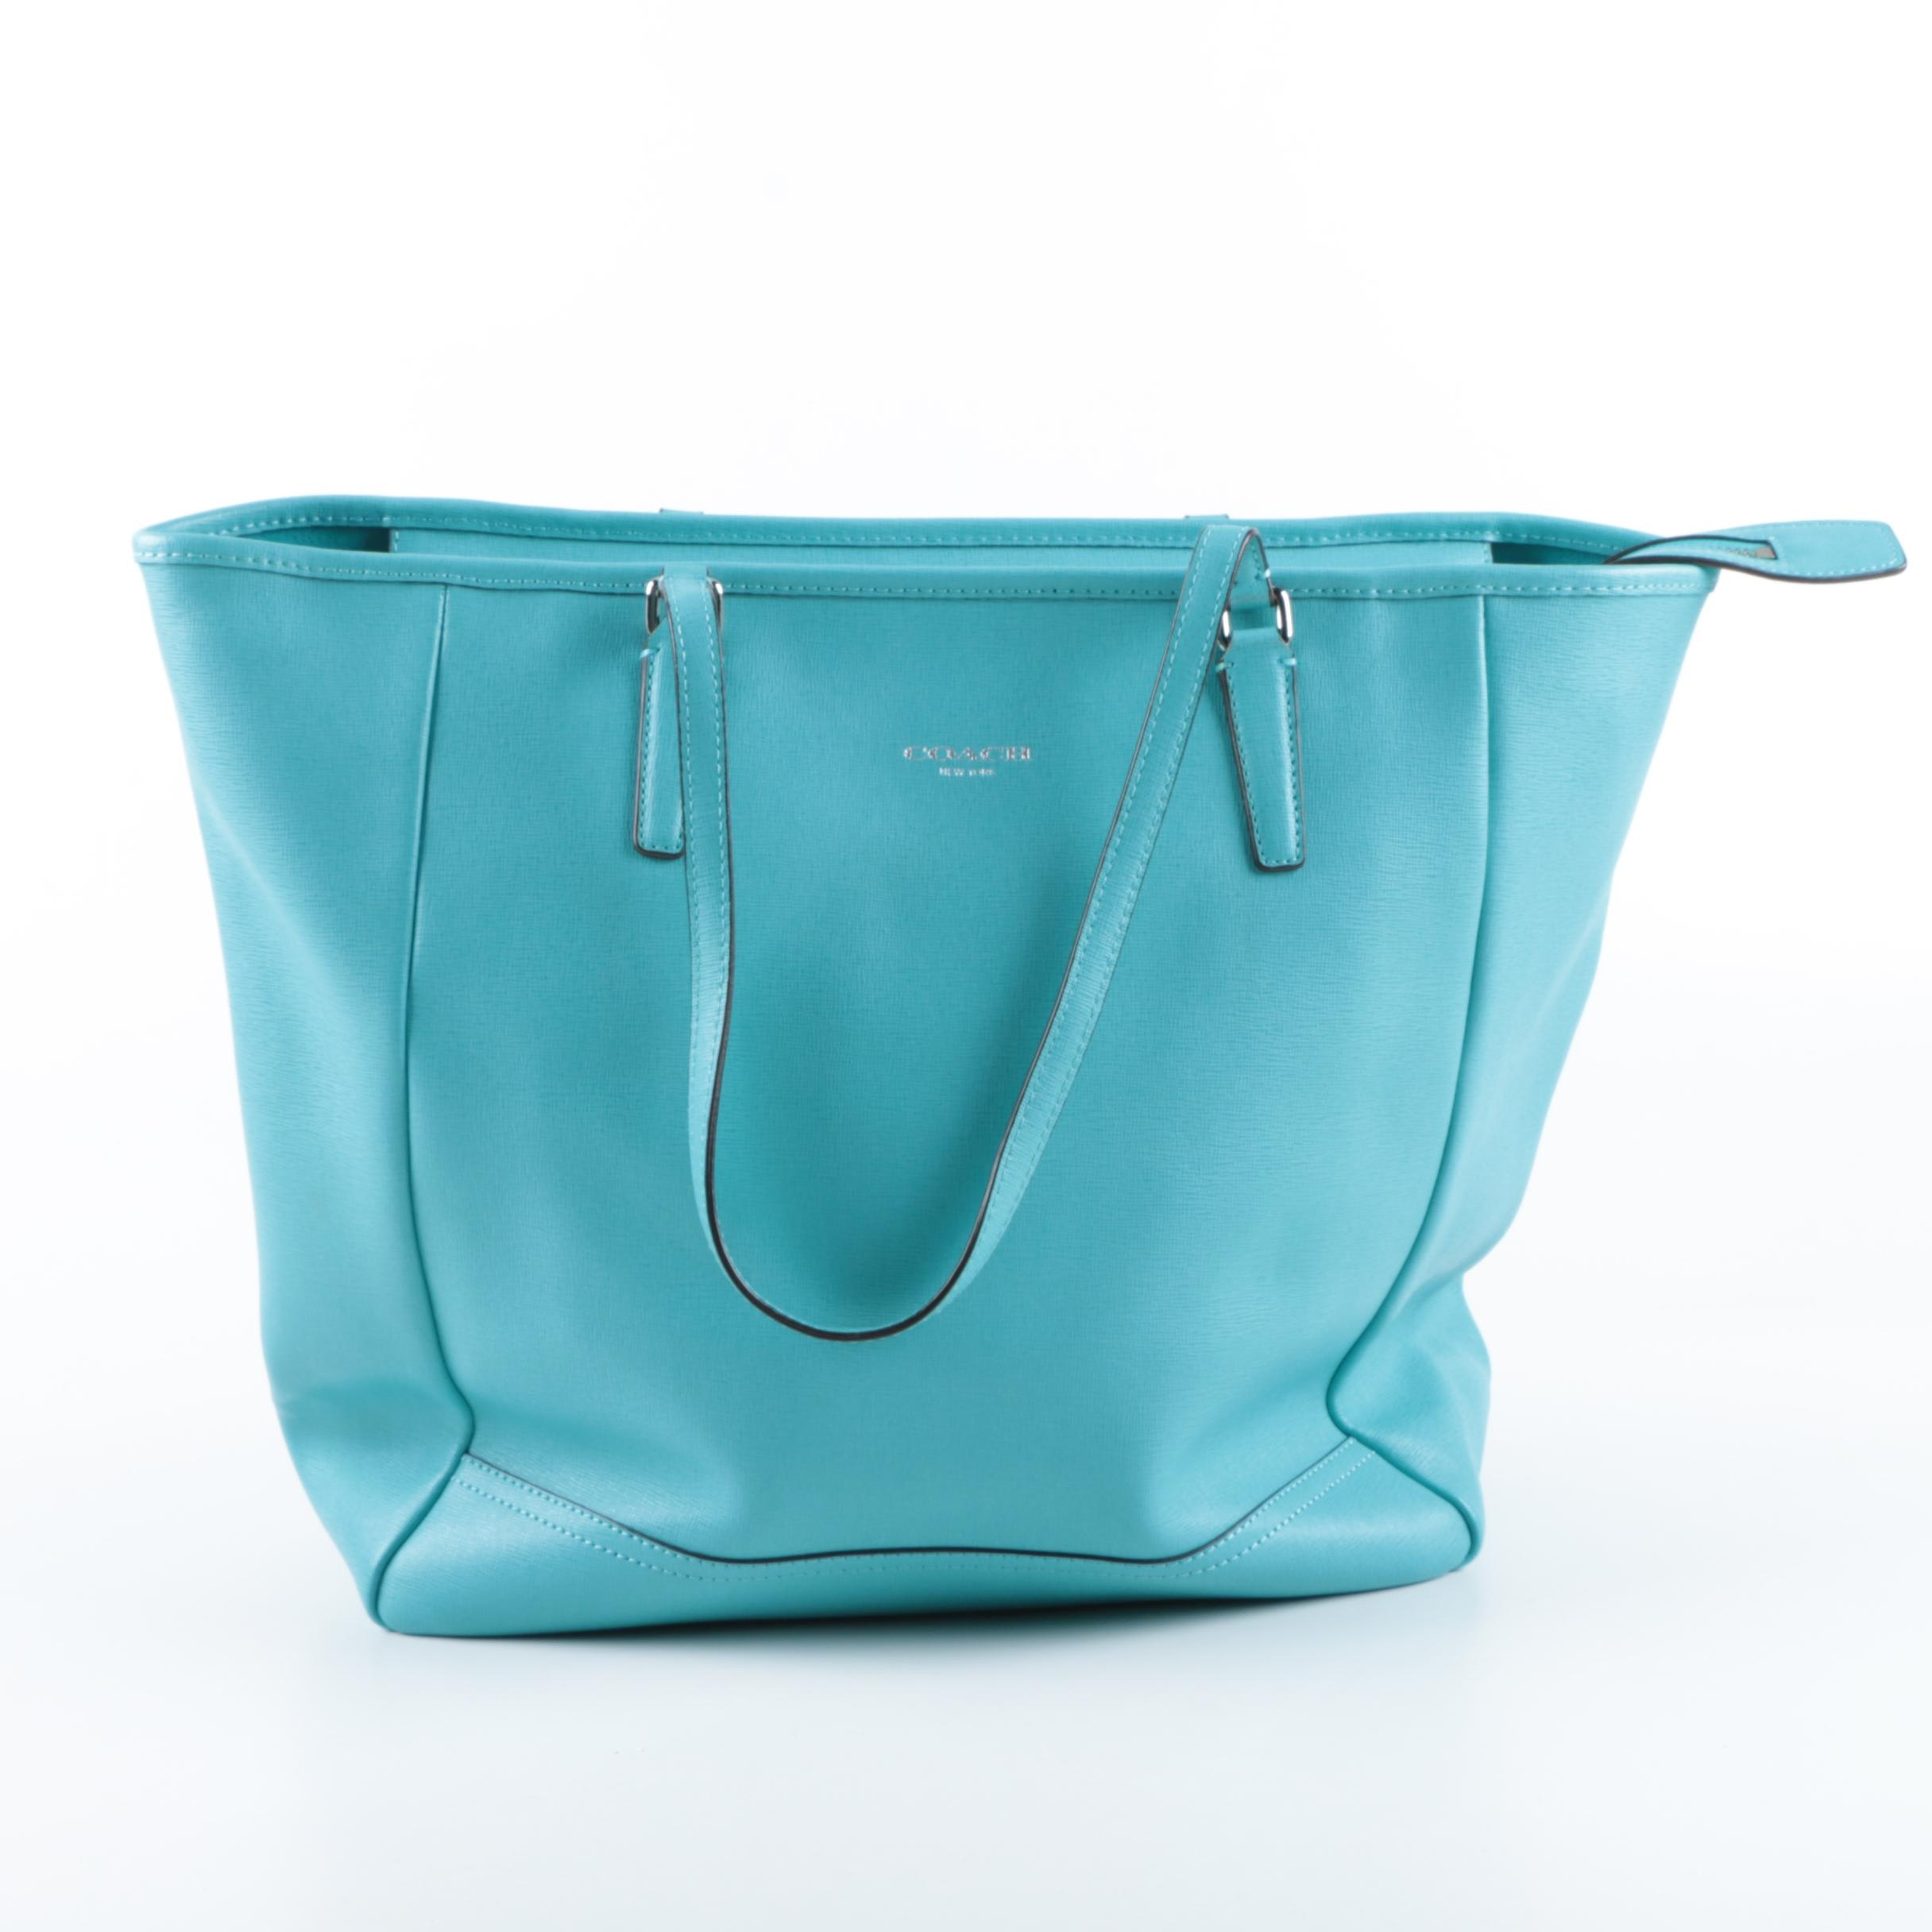 Coach City Aqua Blue Saffiano Leather Tote